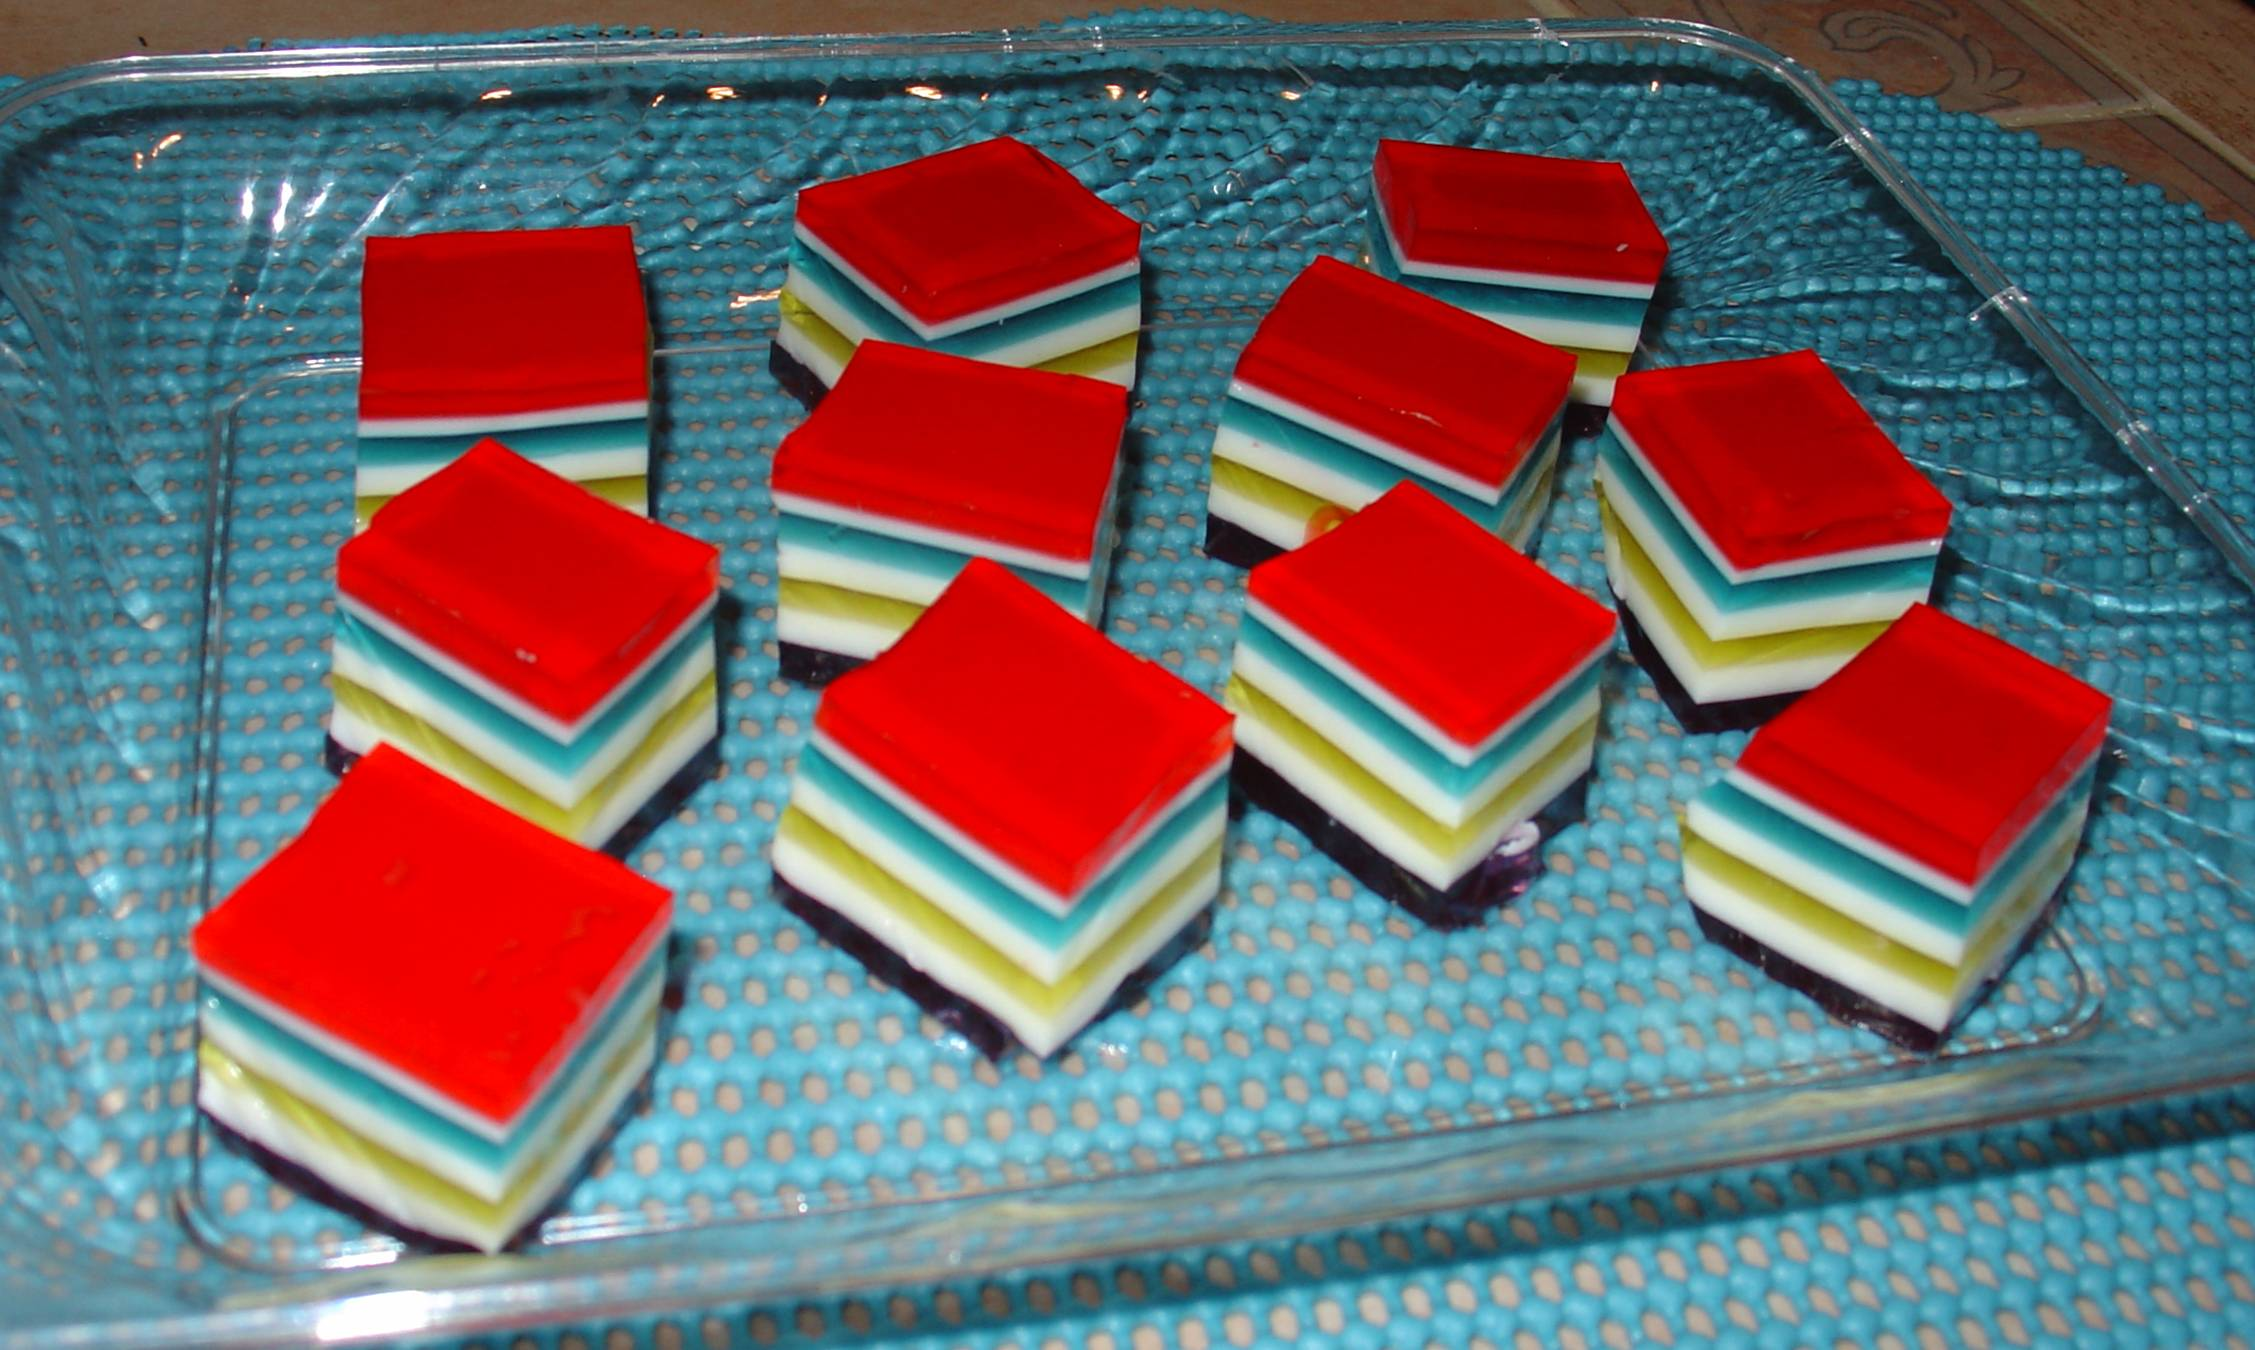 Layered Jello Cubes